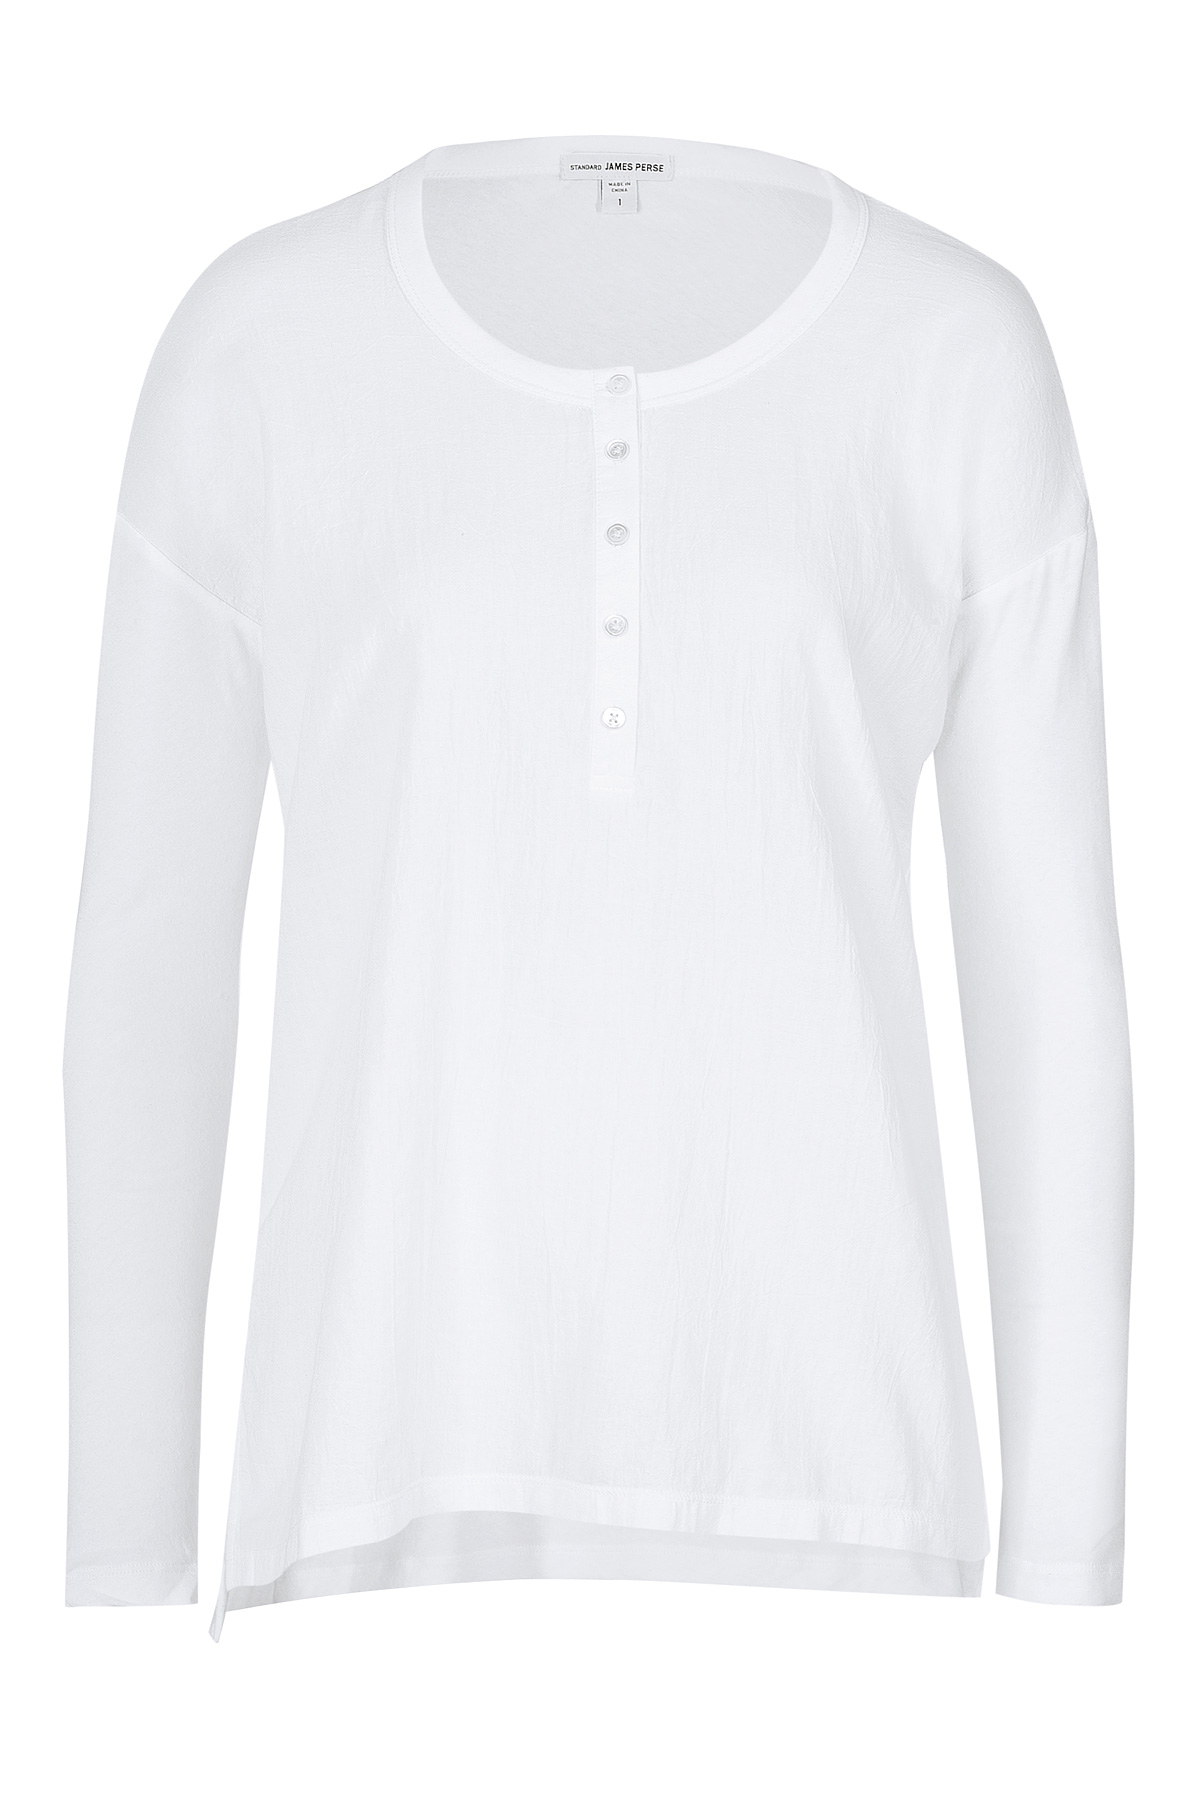 James perse cotton henley white in white lyst for James perse henley shirt